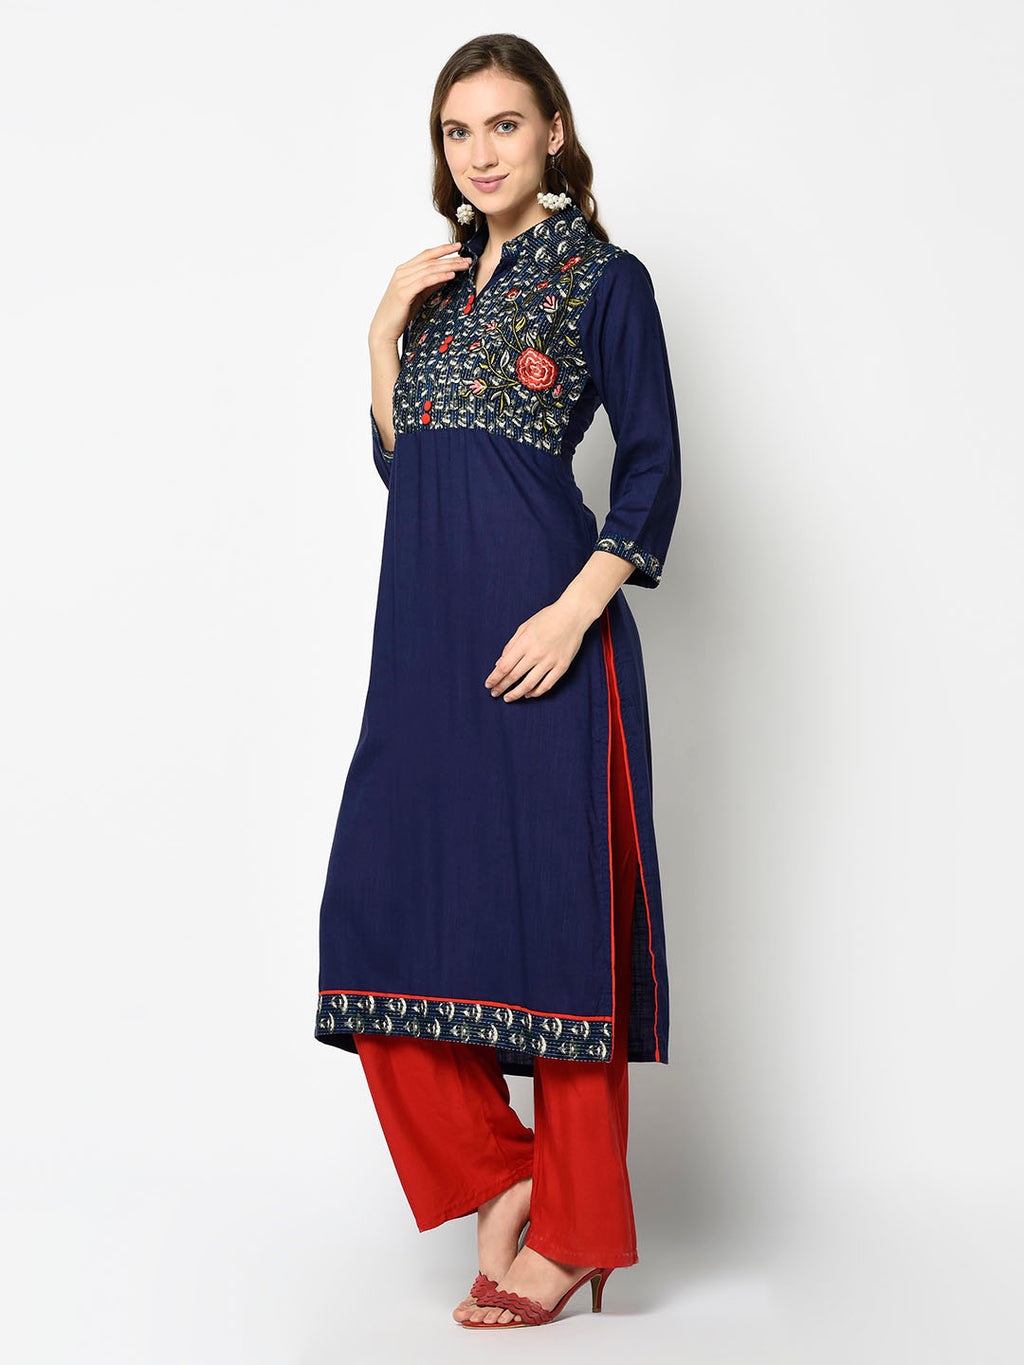 Royal Blue Collared Kurti with Floral Embroidery